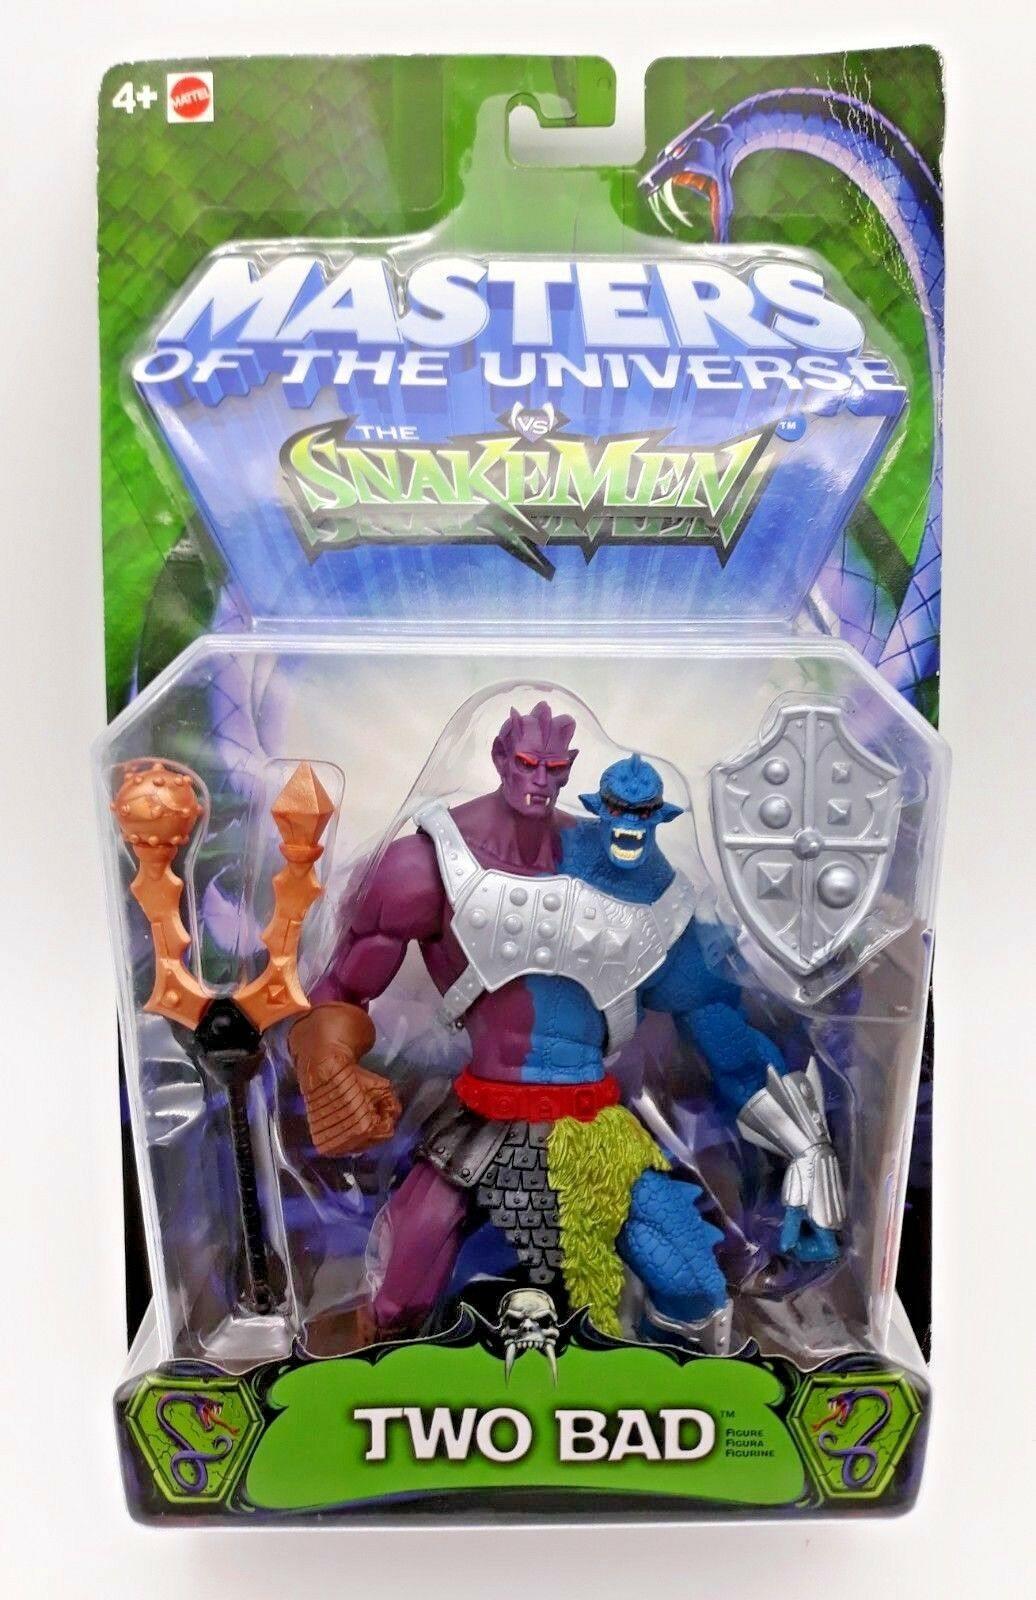 2003 série moderne motu he-man masters of the universe vs snakemen deux mauvaise